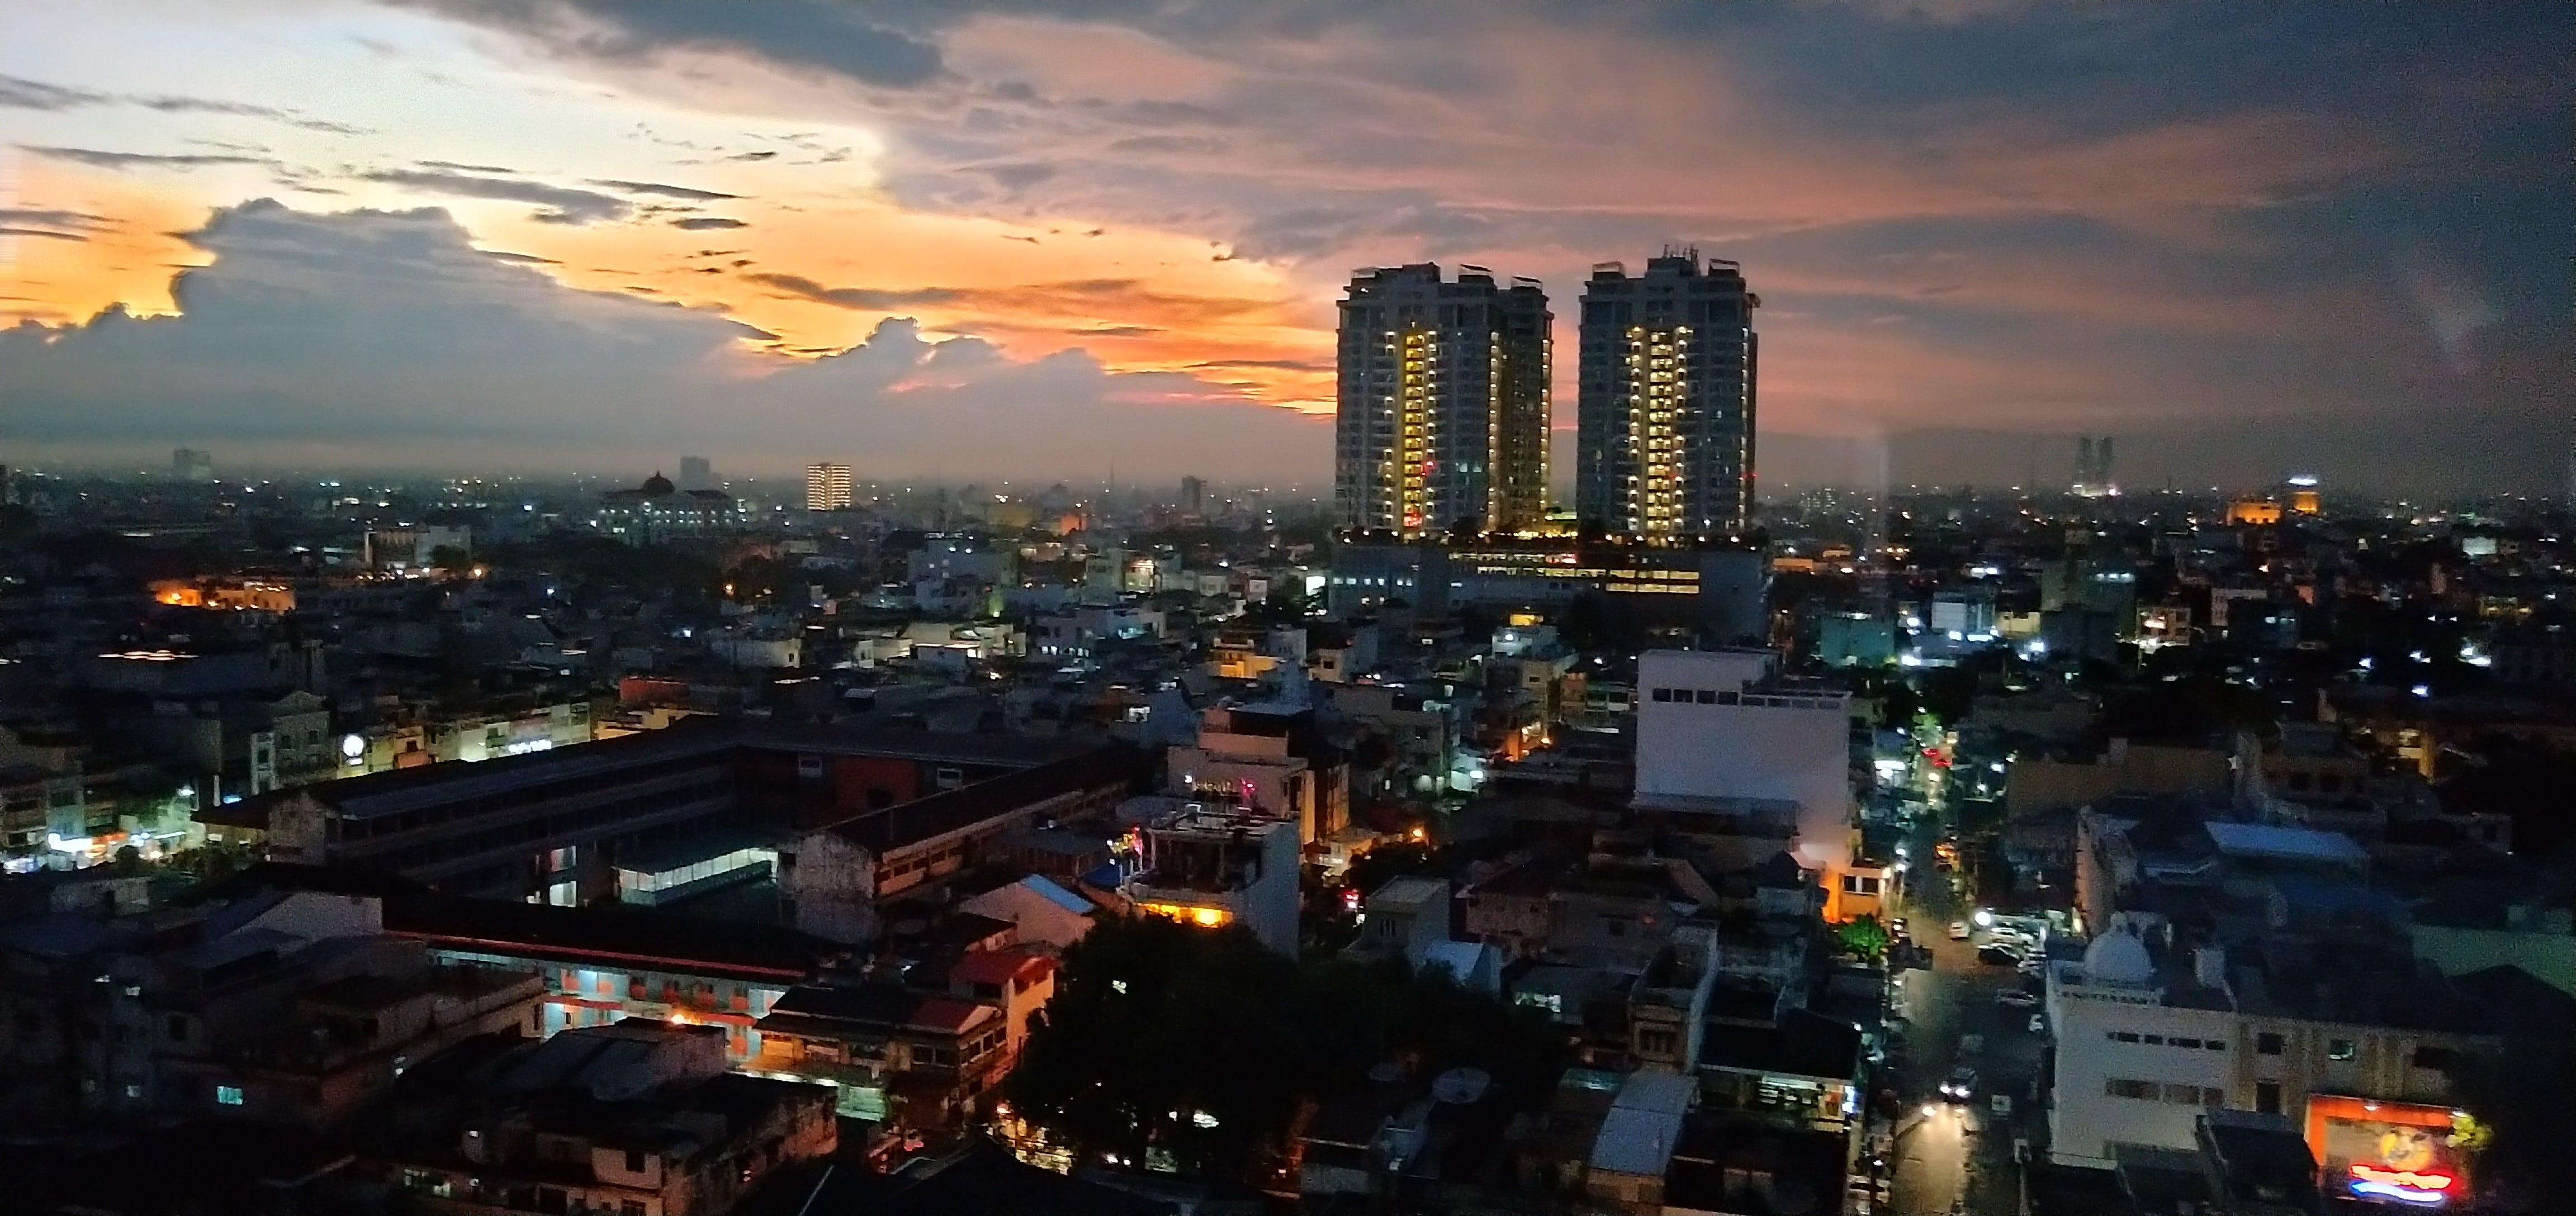 Free stock photo of Evening view of Medan